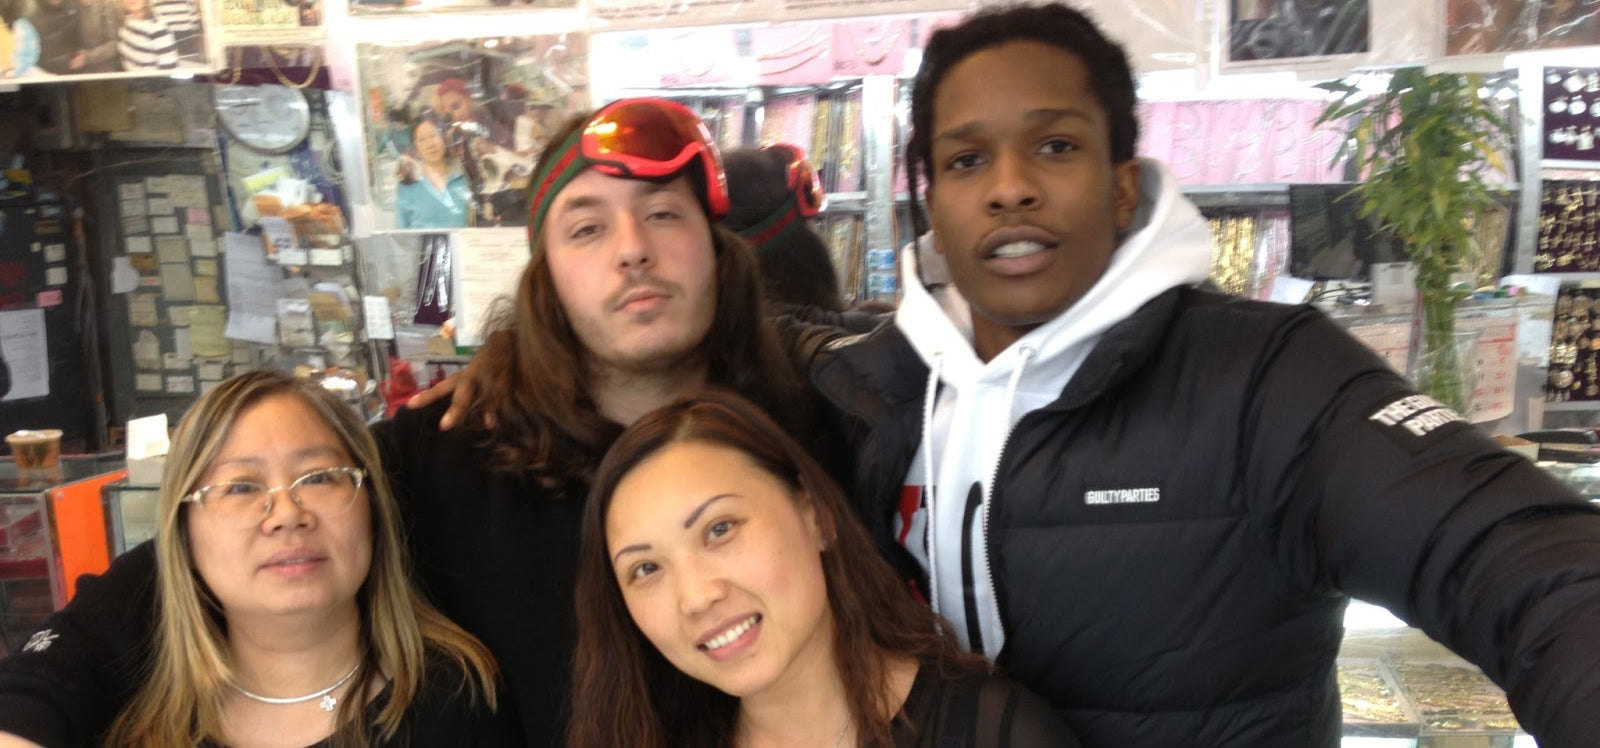 A$AP Rocky and A$AP Lou - ASAP Rocky and ASAP Lou from ASAP Mob posing with Eva and Yina at Popular Jewelry